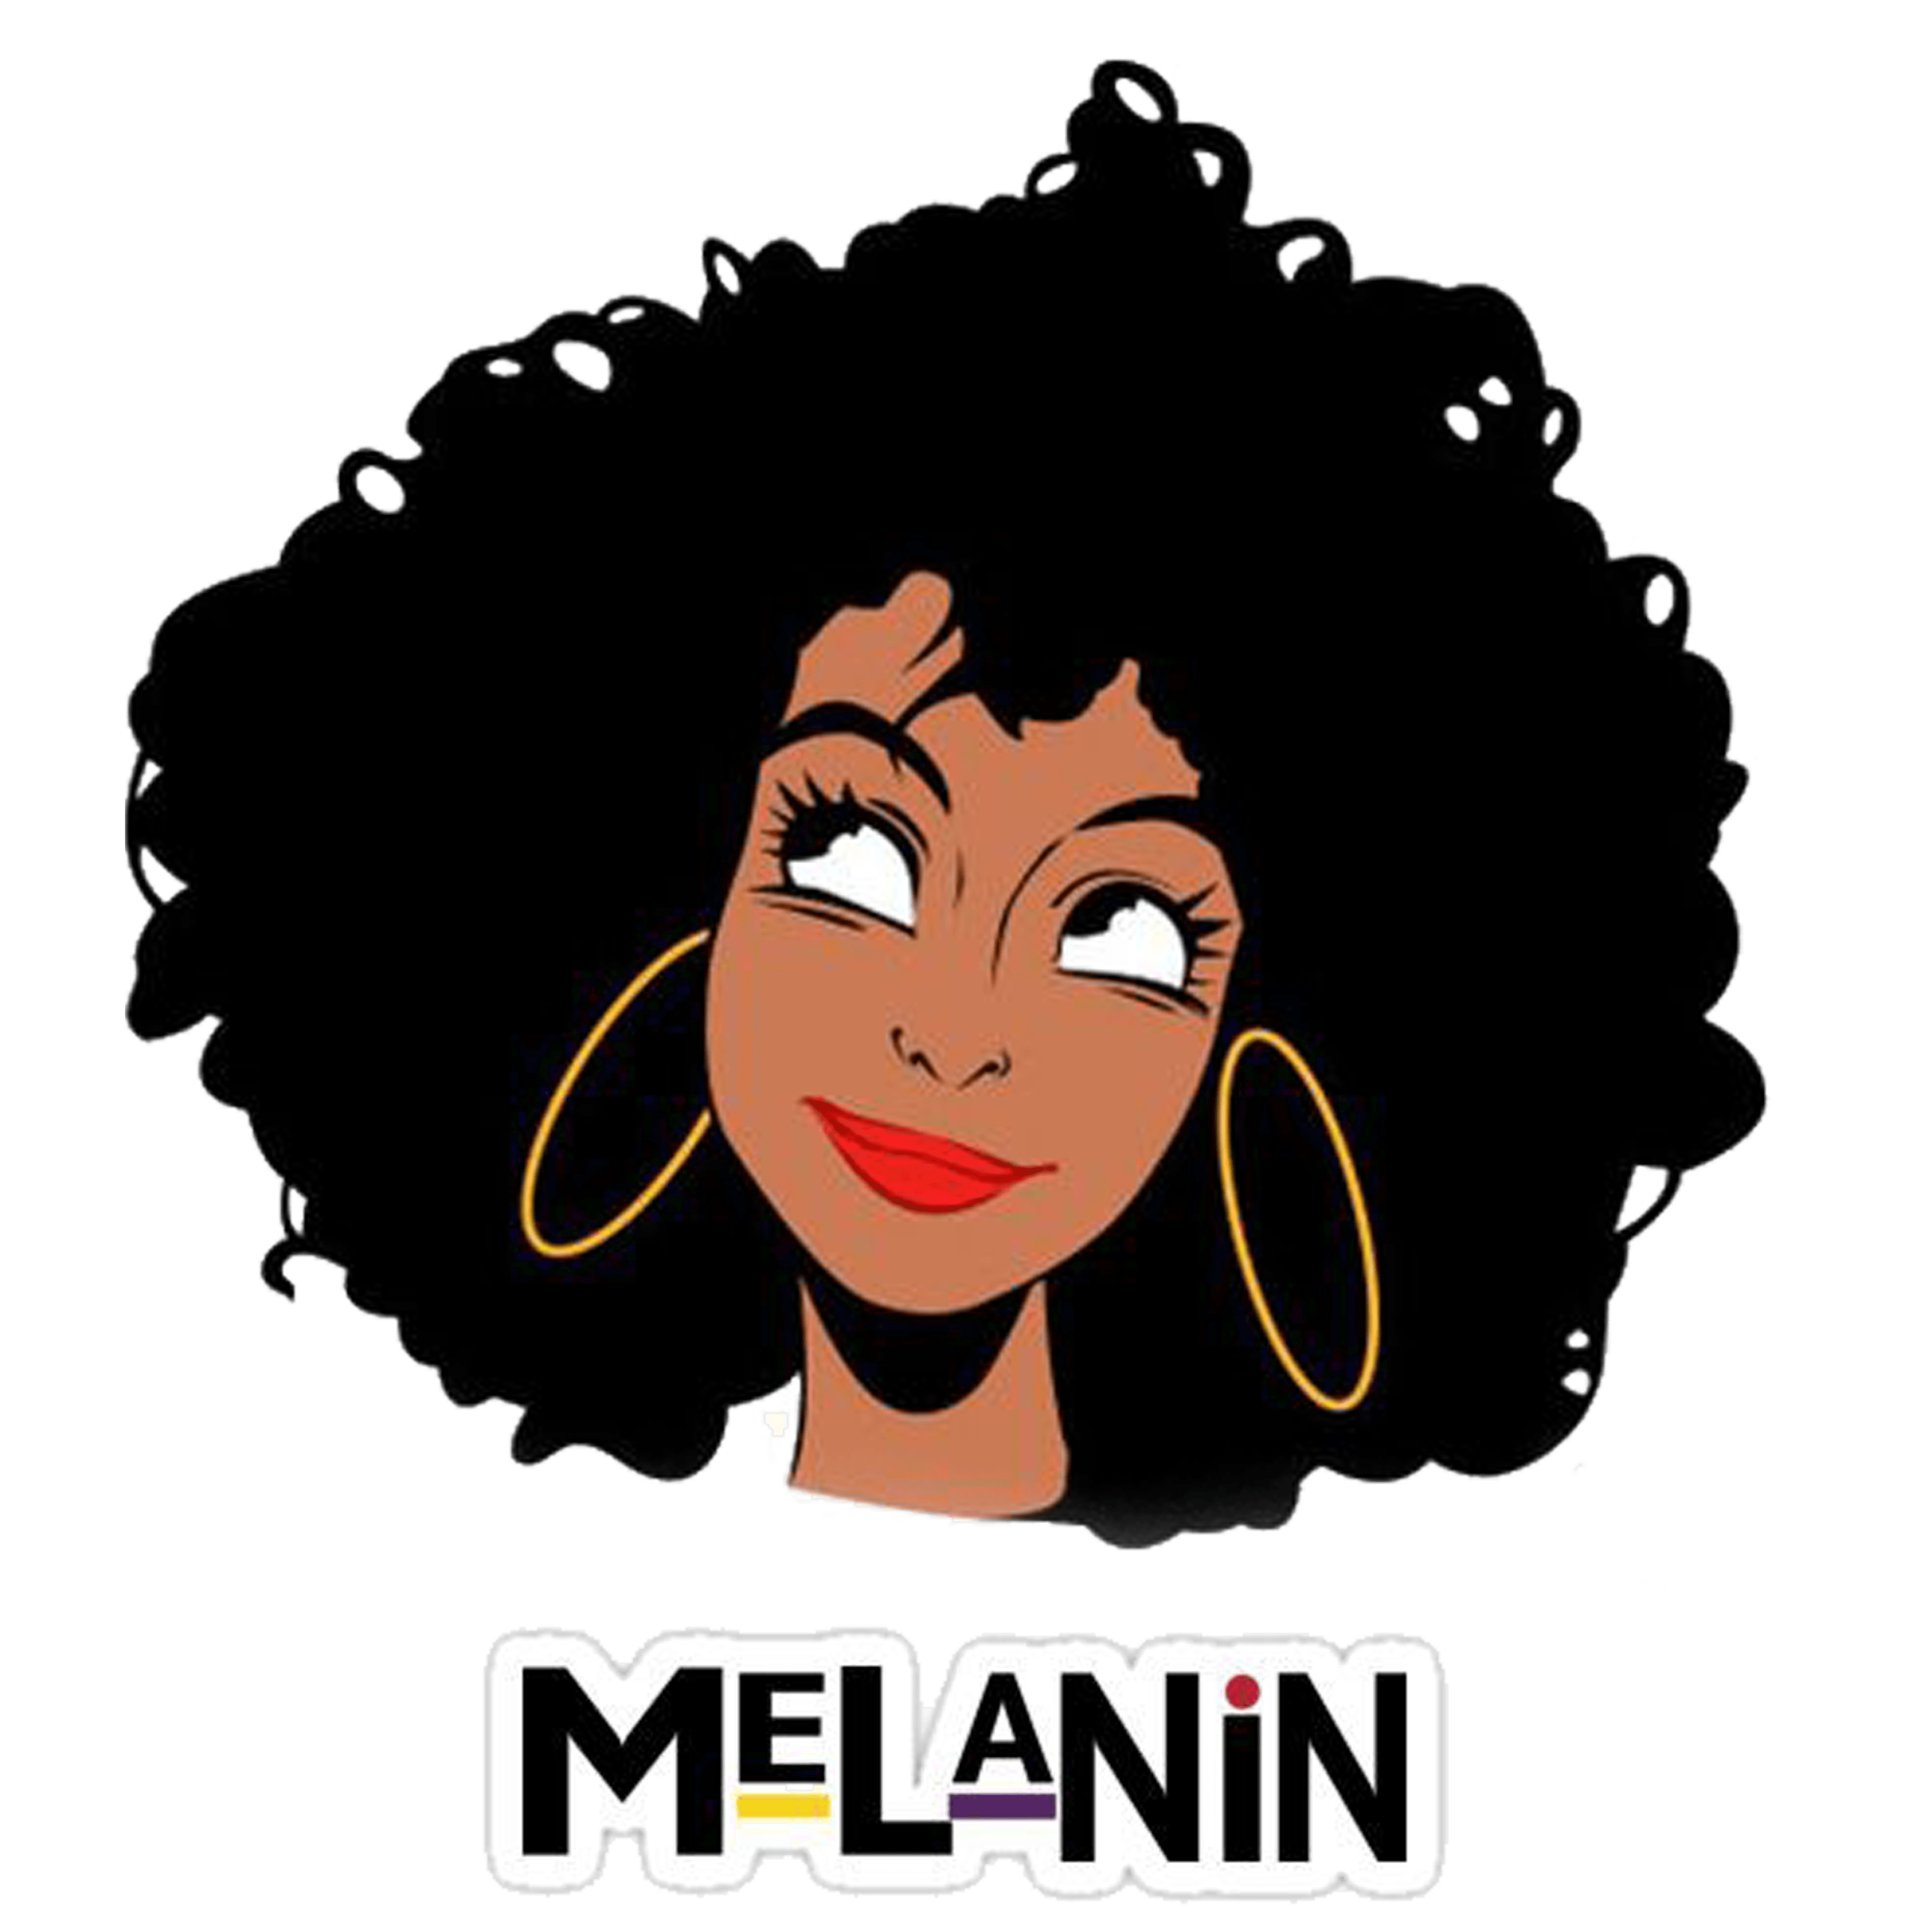 Melanin Series 1 In 2020 Disney Characters Disney Princess Melanin